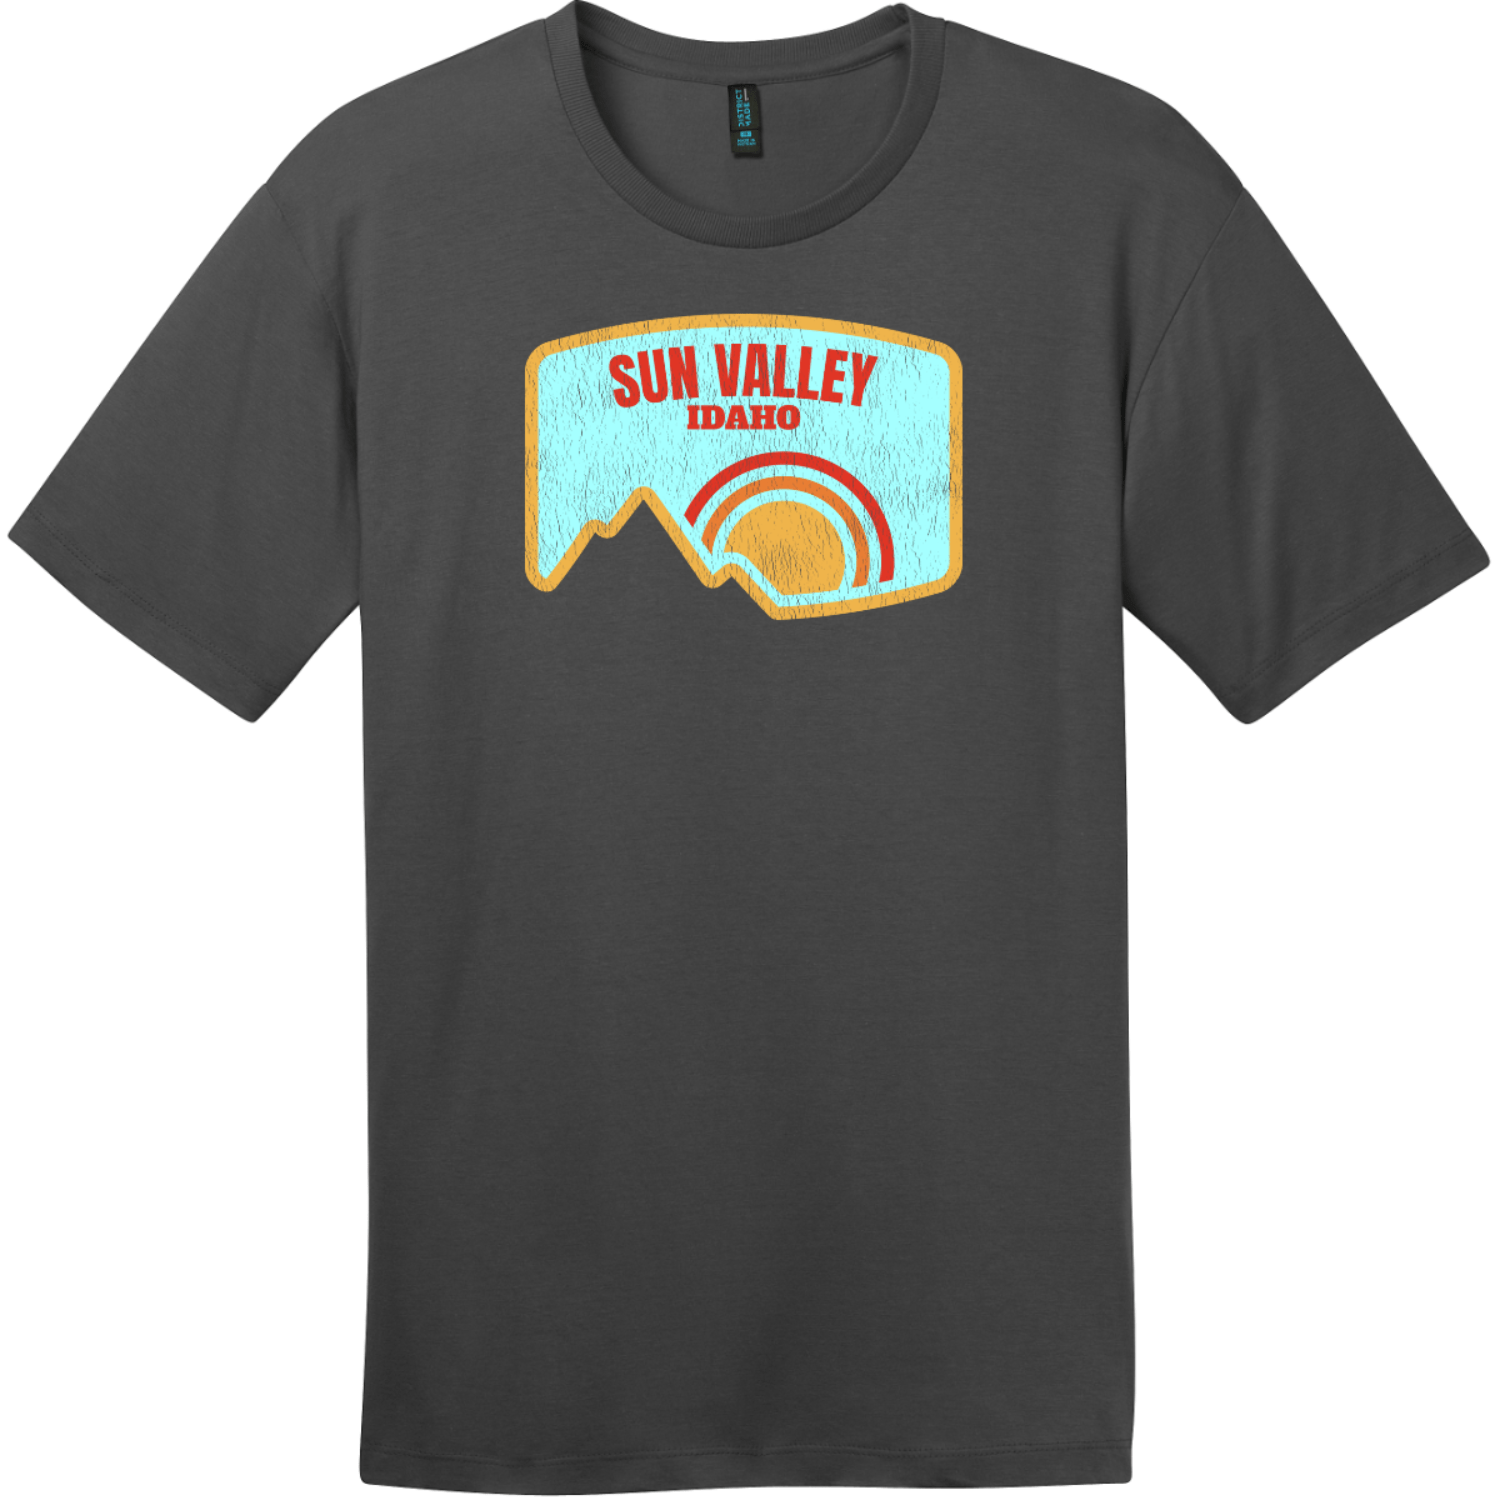 Sun Valley Idaho Mountain Vintage T-Shirt Charcoal District Perfect Weight Tee DT104